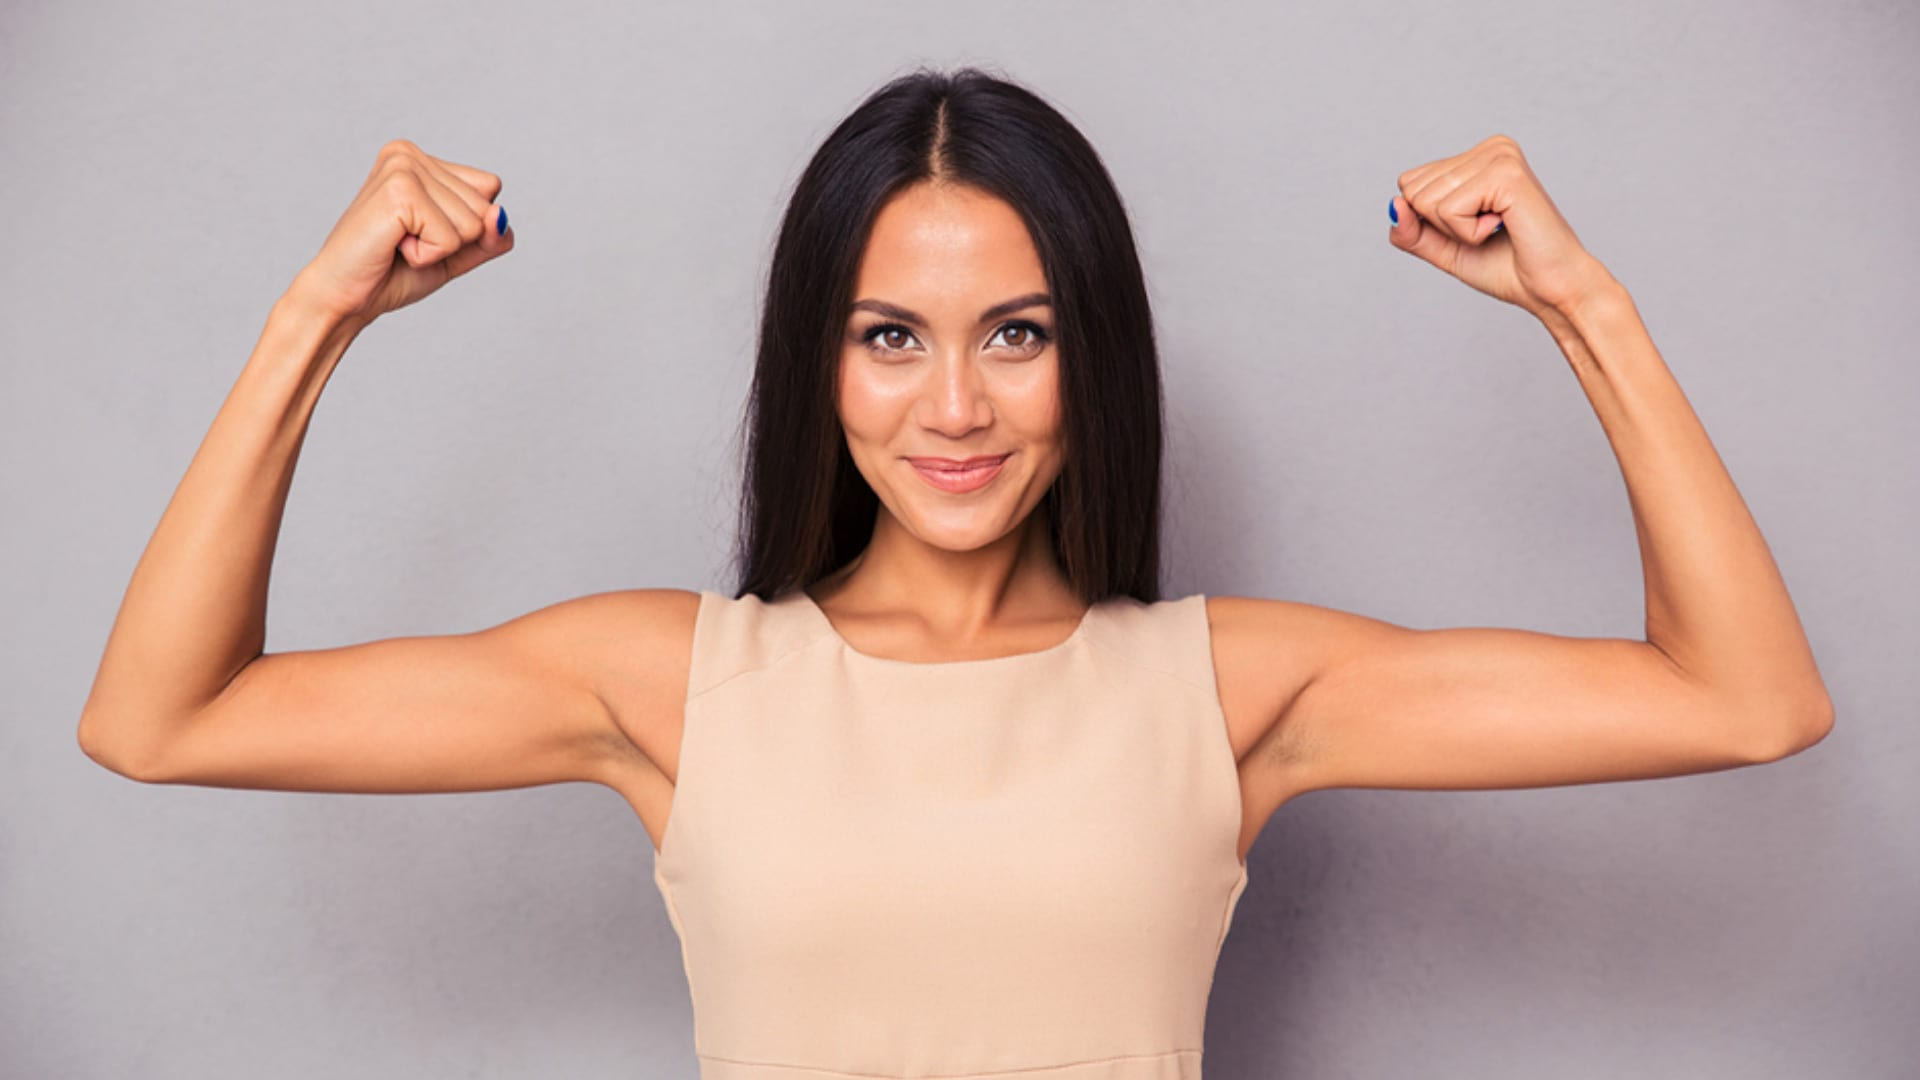 Skin laxity. A workout is merely the starting block for toned muscles.